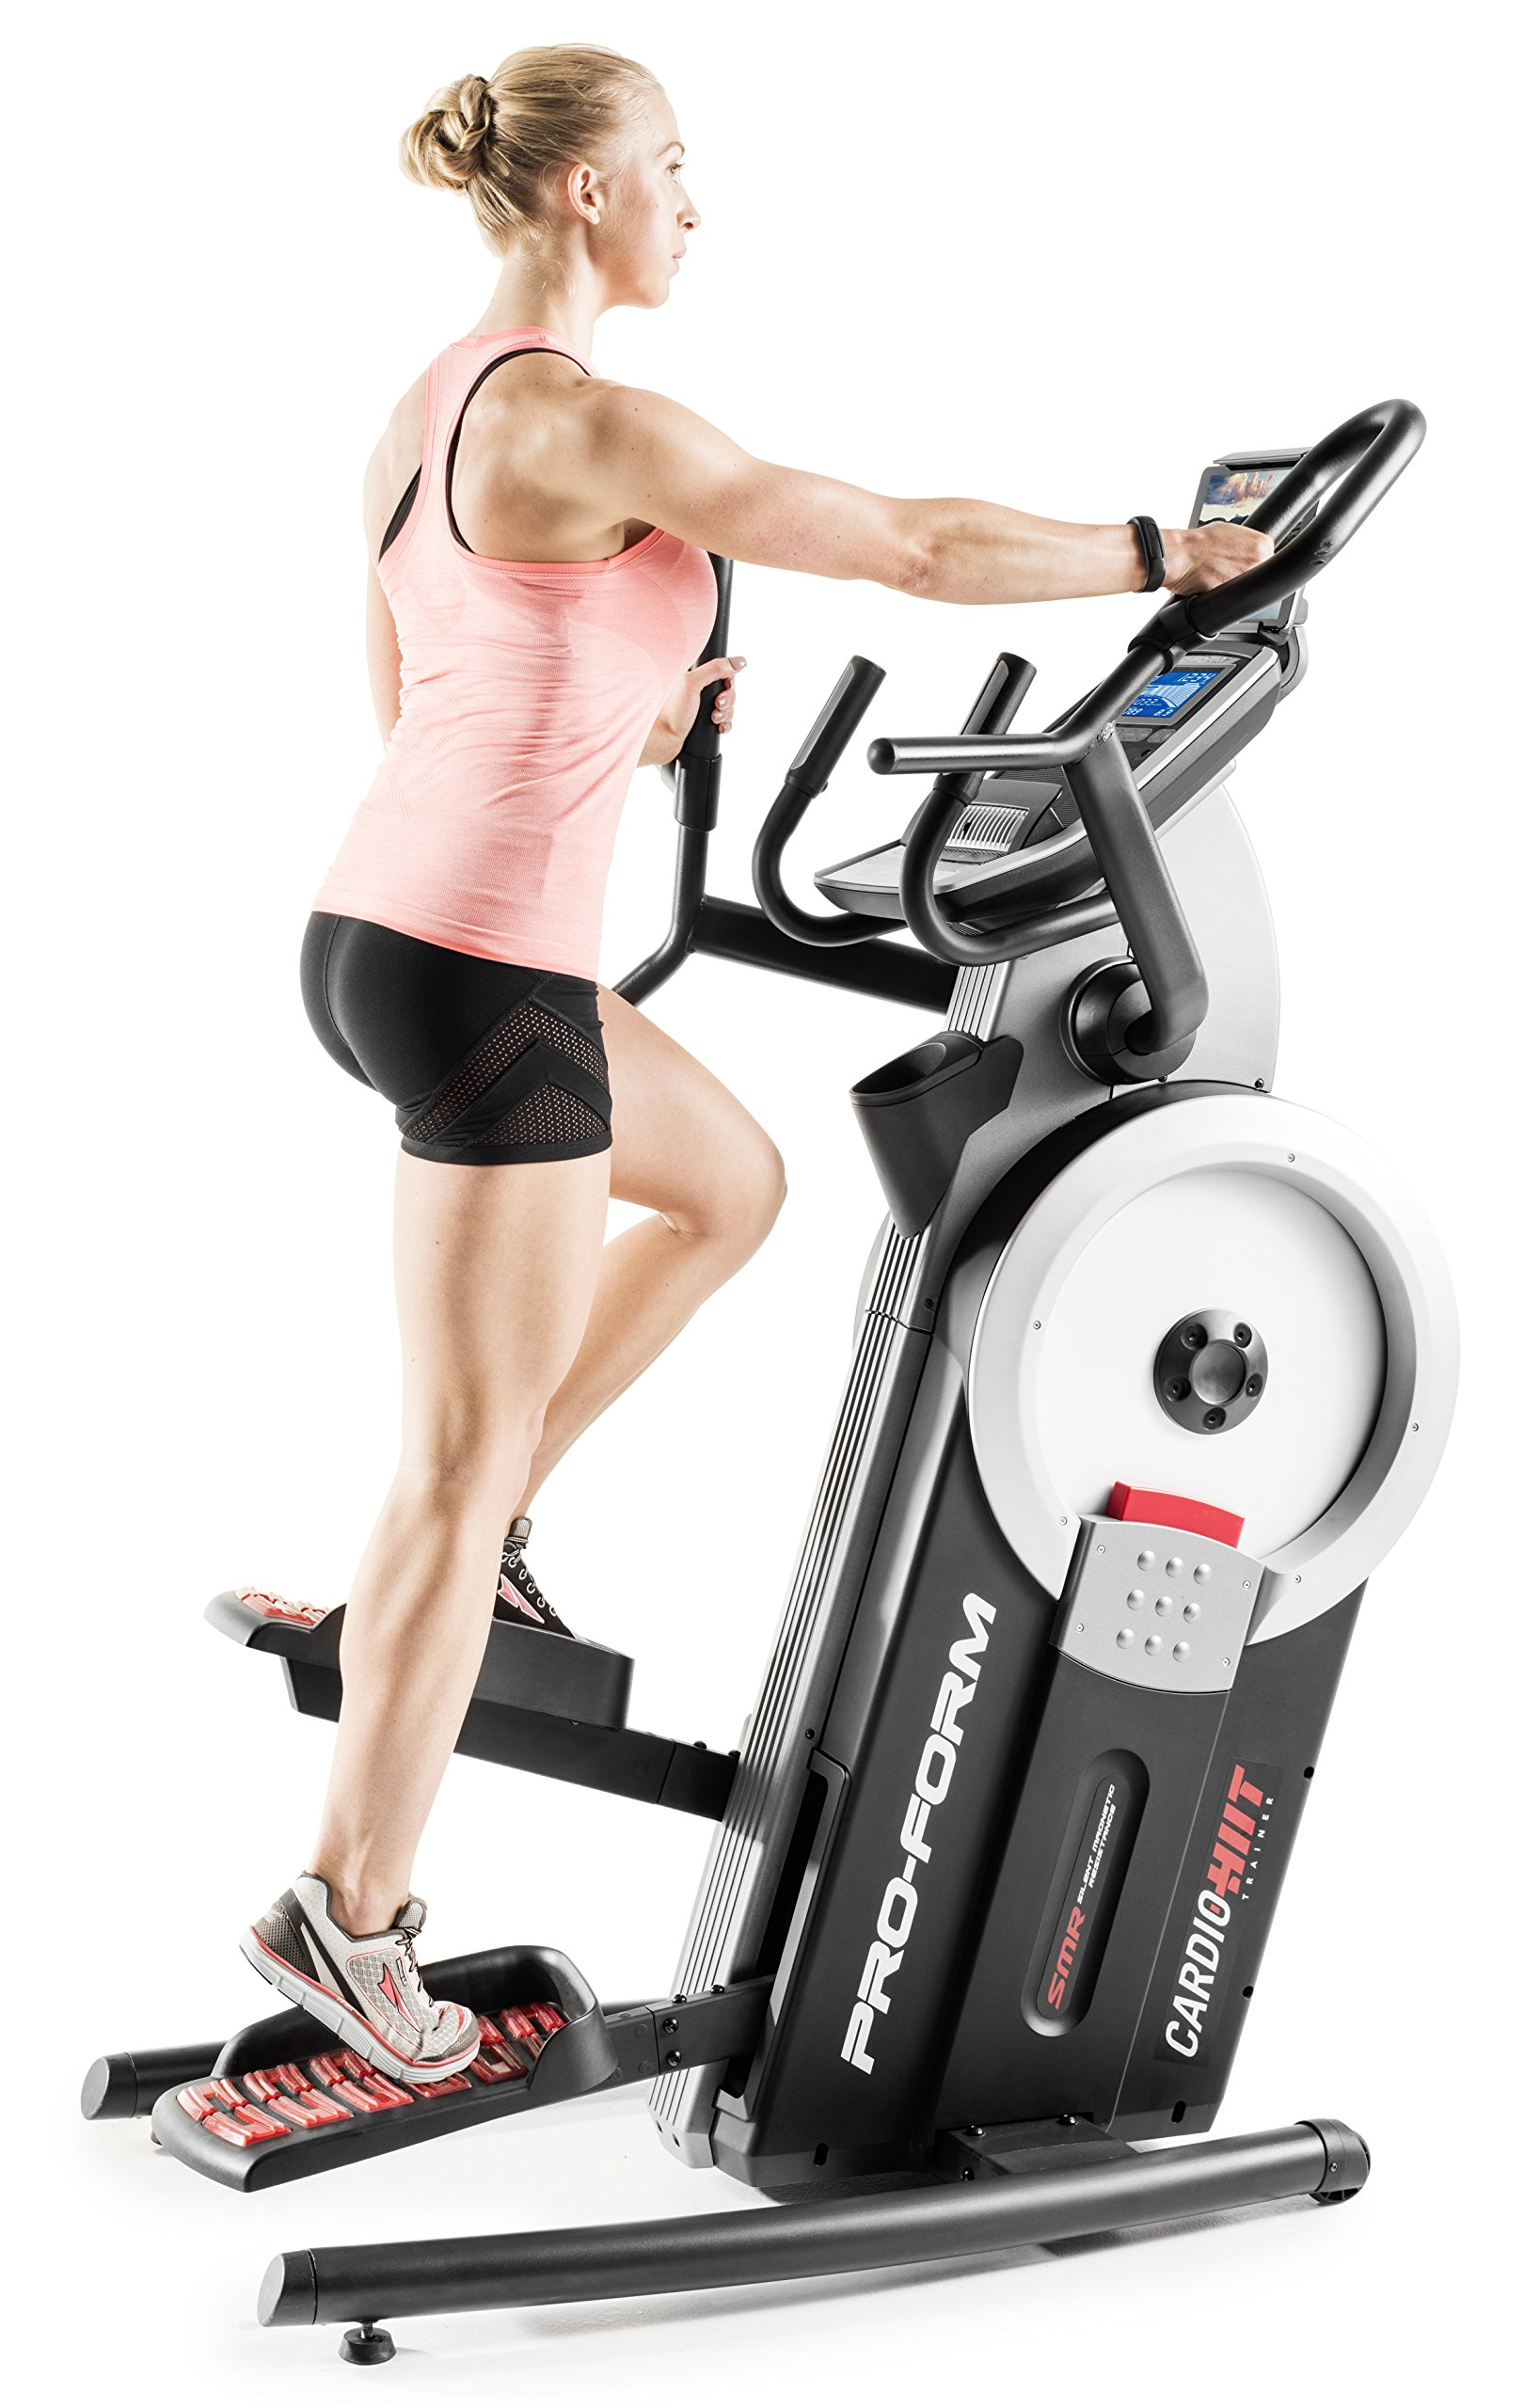 ProForm Cardio HIIT Elliptical Trainer by ProForm (Image #22)